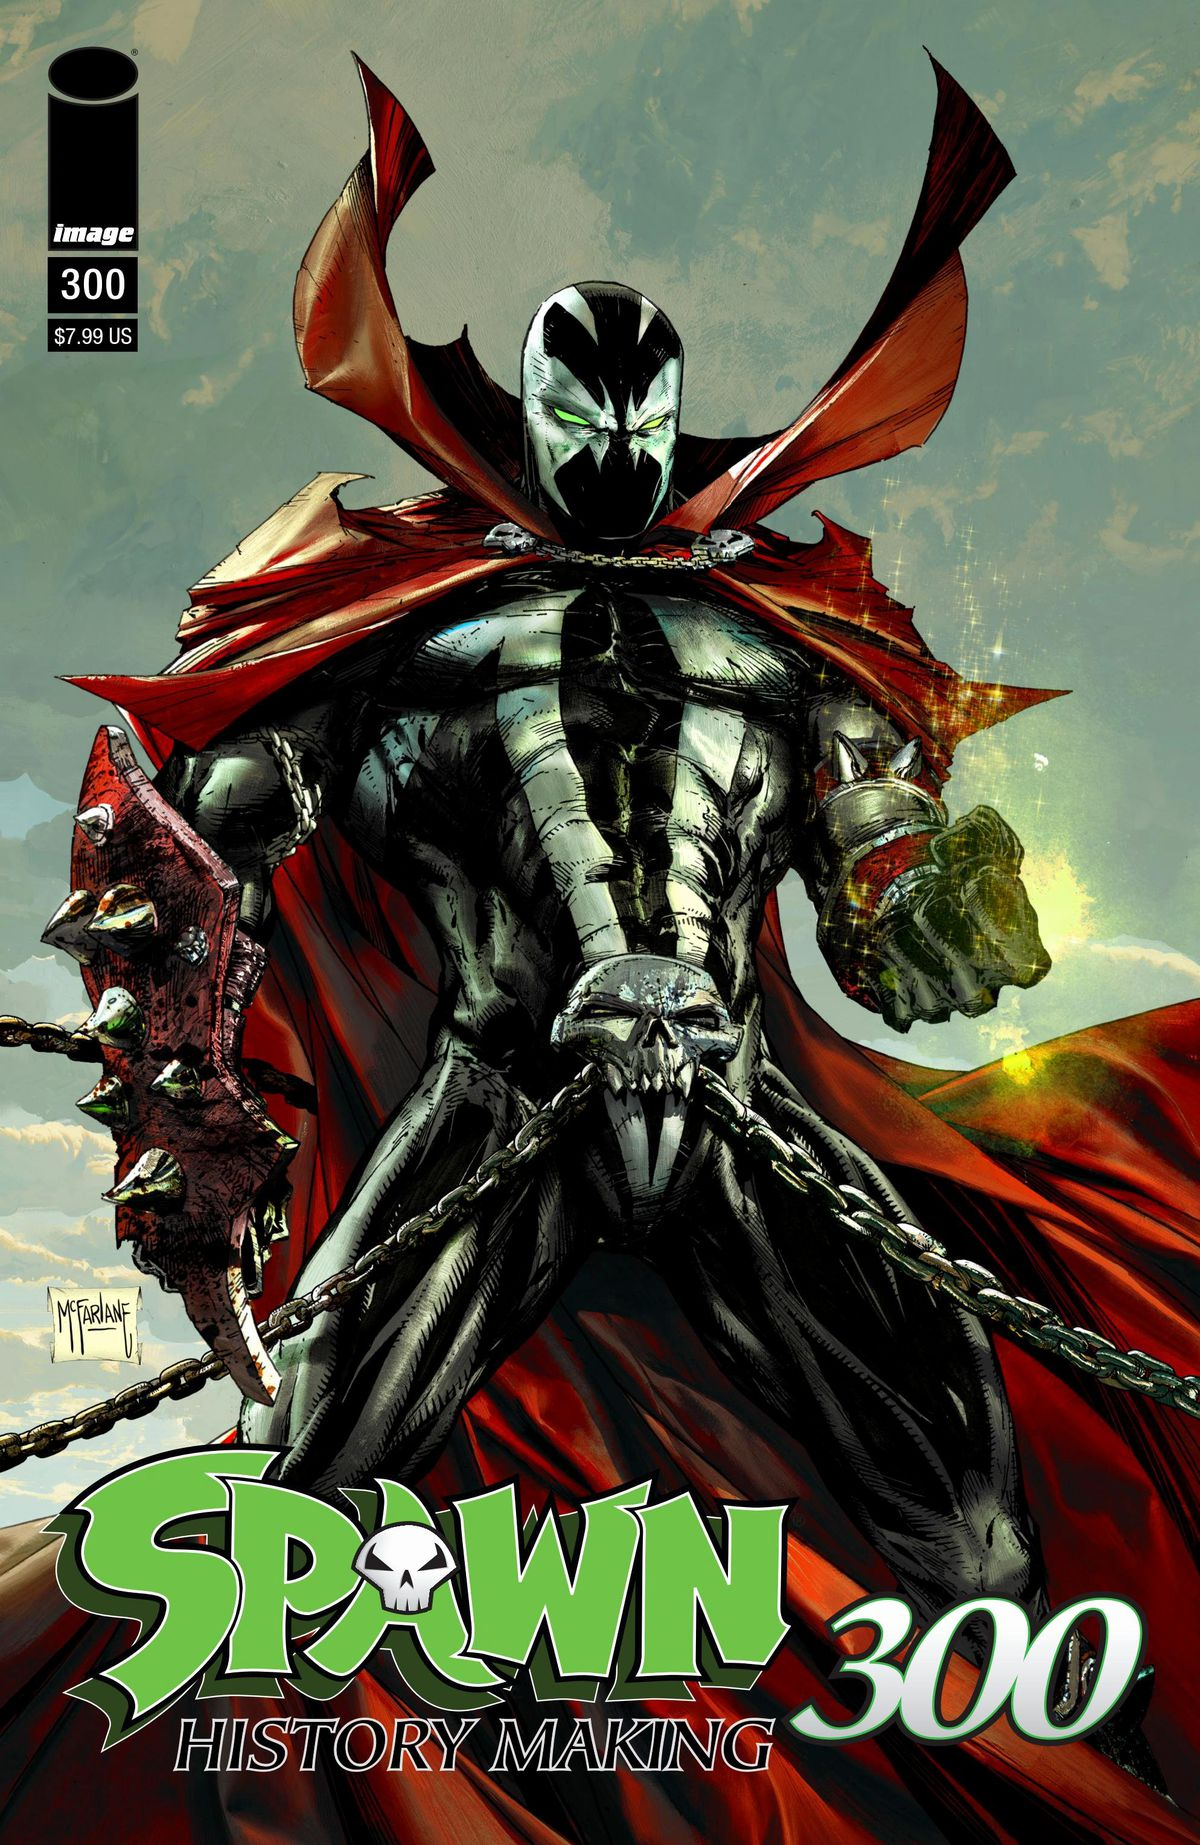 The anti hero Spawn, in his chain skull belt and voluminous red cloak on the cover of Spawn #300, Image Comics (2019).